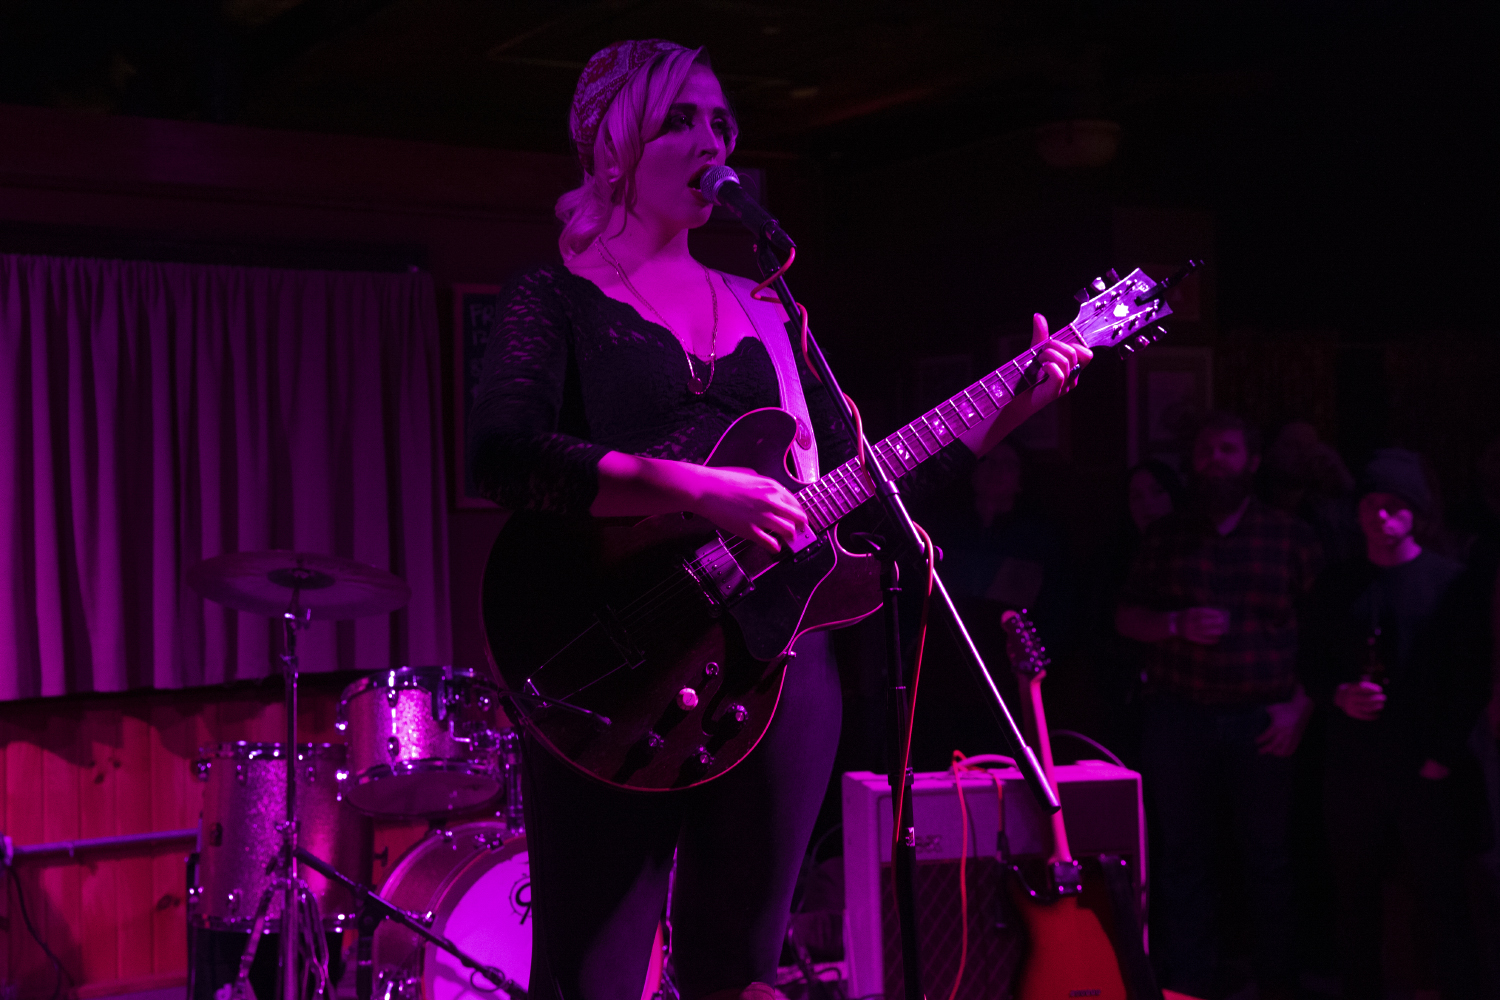 Elizabeth Moen performs a solo set during a concert at Trumpet Blossom Cafe on Friday, Dec. 6, 2019. The concert features local artists Sinner Frenz, Good Morning Midnight, Elizabeth Moen, and Karen Meat.